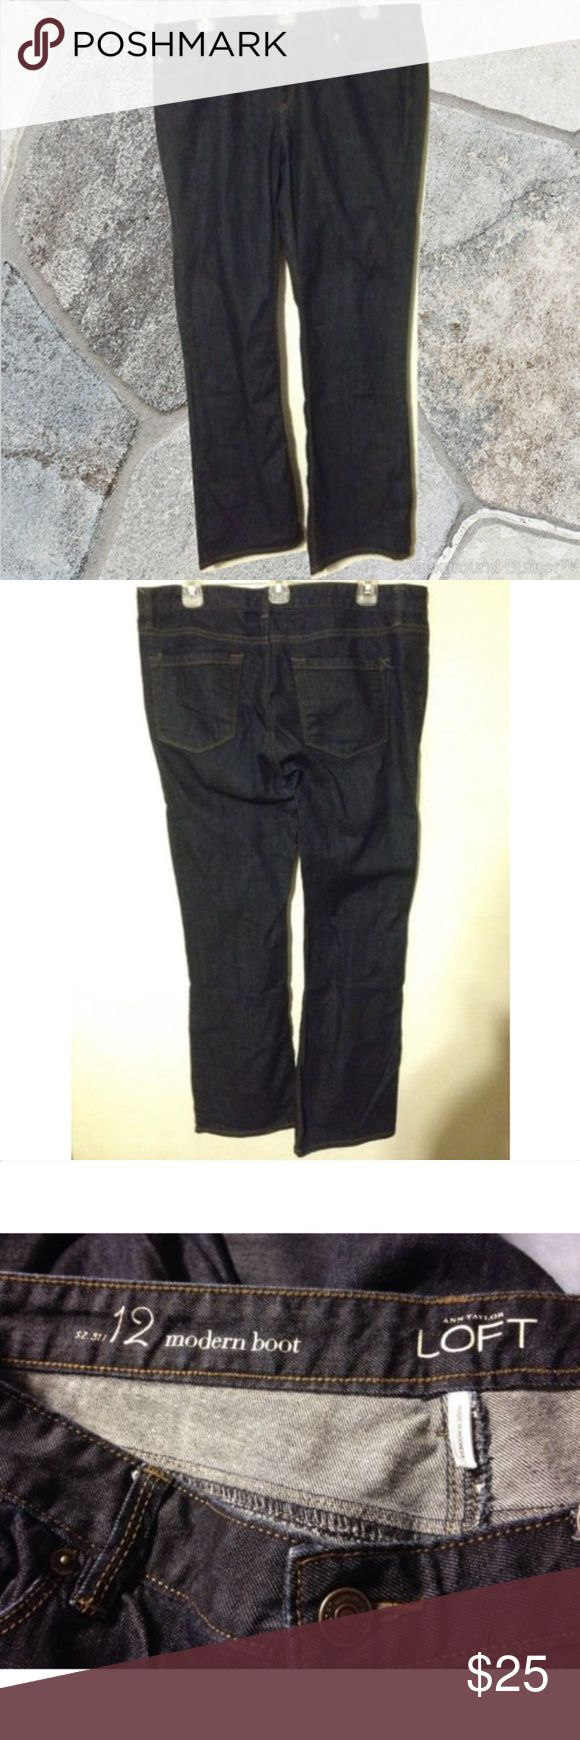 """ANNE TAYLOR LOFT Boot Cut Jeans 31/12 ANNE TAYLOR LOFT Womens Jeans Dark Blue Denim Sz 31/12 Modern Boot Cut Mid Rise *Waist (measuring from side to side, unstretched): 18""""  or  48.2cm *Inseam:  31"""" or 78.7cm *Rise (from crotch seam to waistline):  9"""" SEE LAST PHOTO FOR ALL DETAILS.  THANKS! LOFT Jeans Boot Cut"""